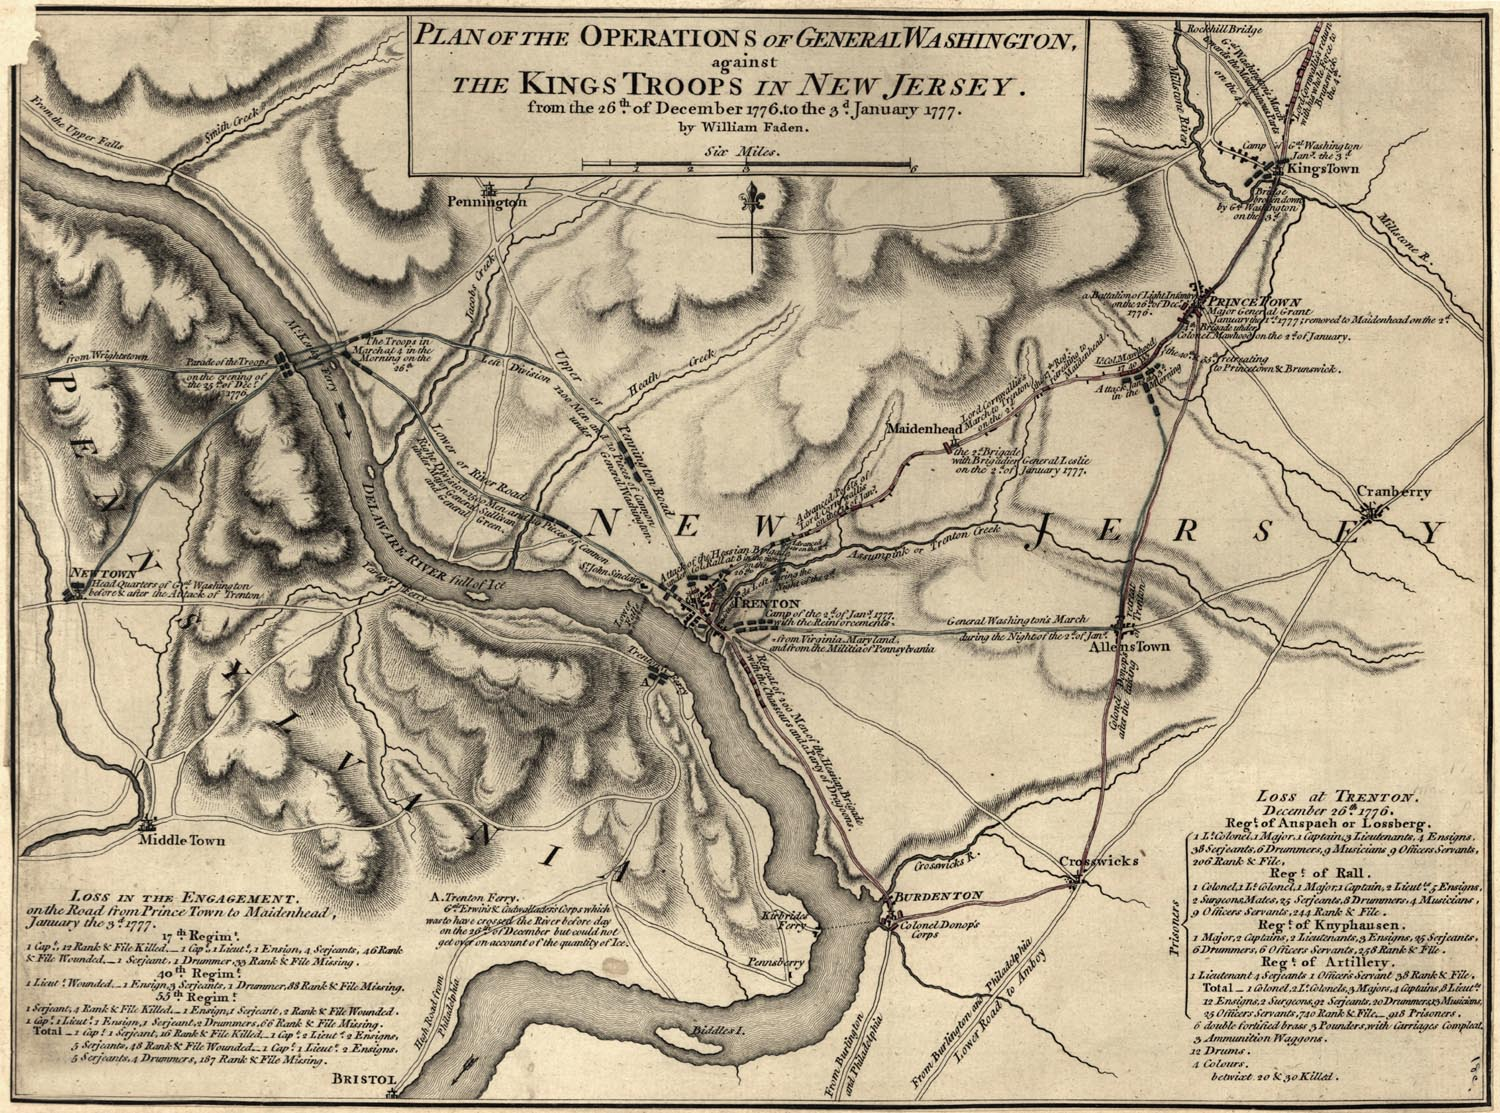 Great Old Revolutionary War Battle Maps Click To Enlarge